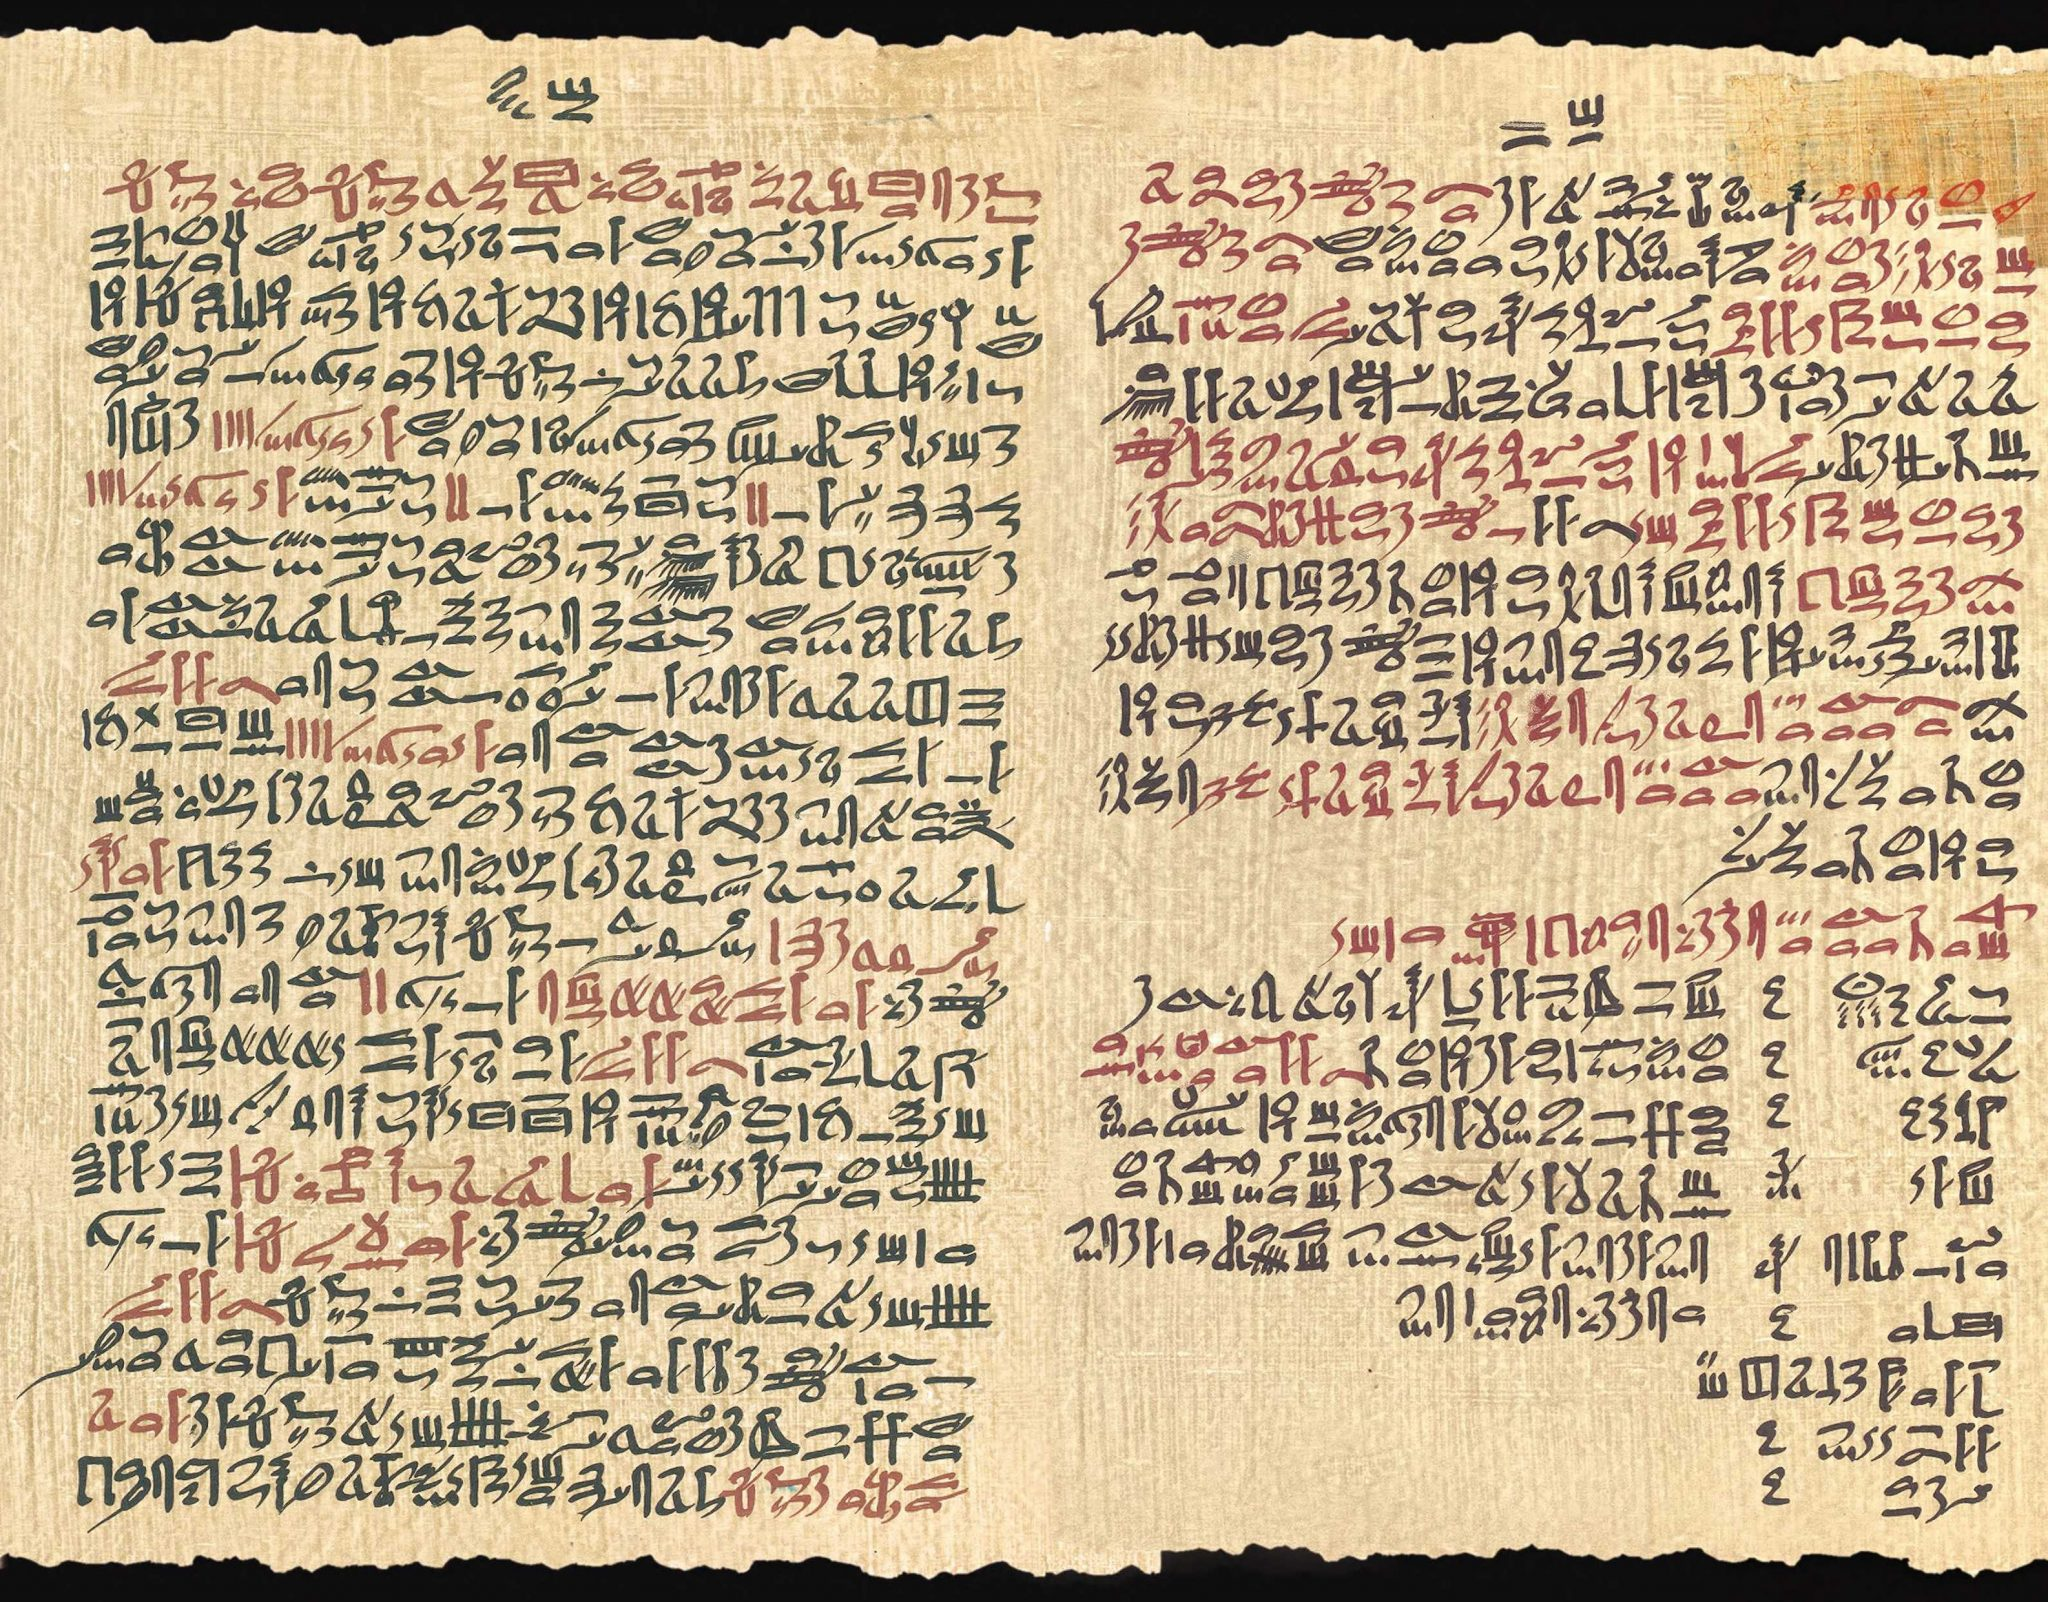 Papyrus Ebers, Columns 98-99 with the Kyphi Recipe.